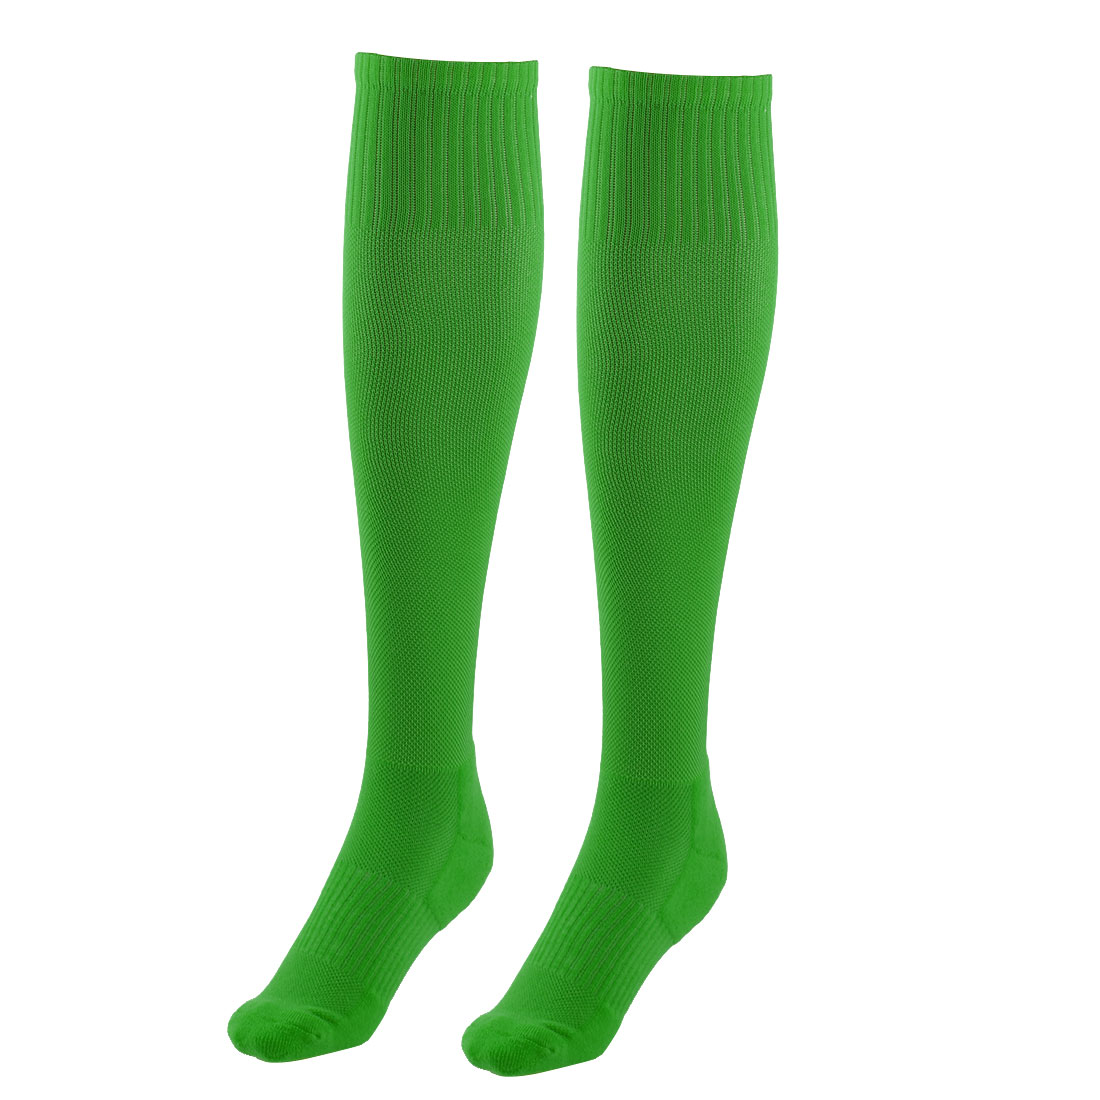 Adult Cotton Blends Knee High Style Hockey Rugby Soccer Football Sports Long Socks Green Pair